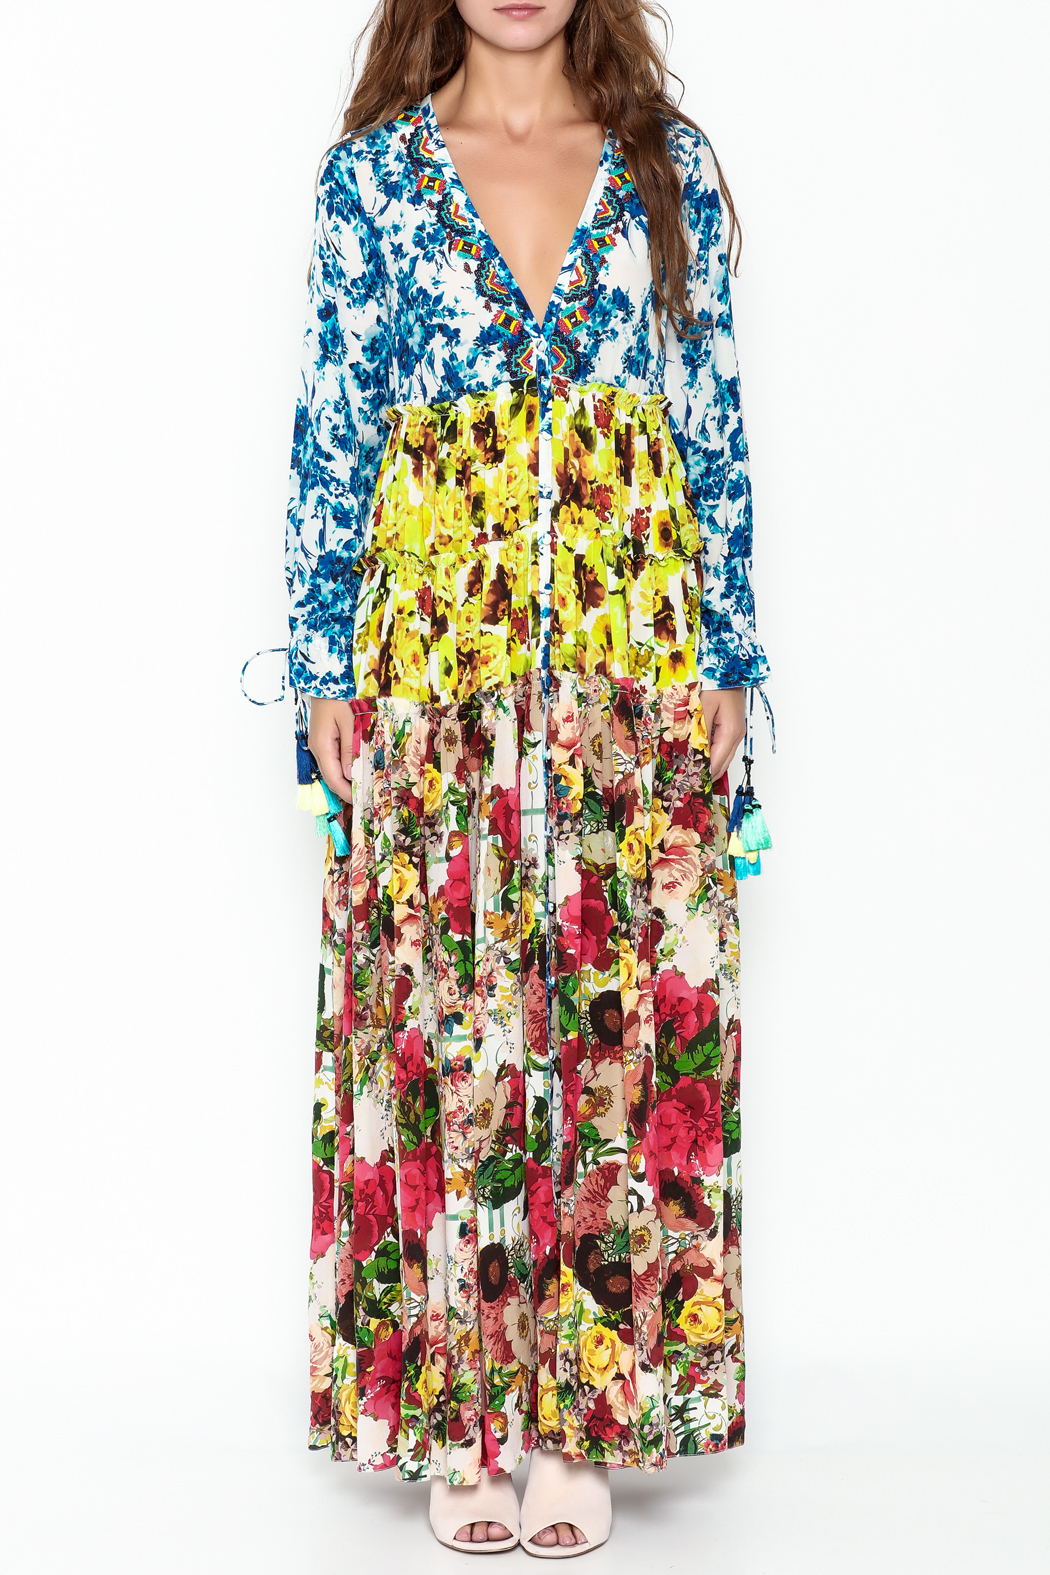 Rococo Sand Multicolored Maxi Dress - Front Full Image